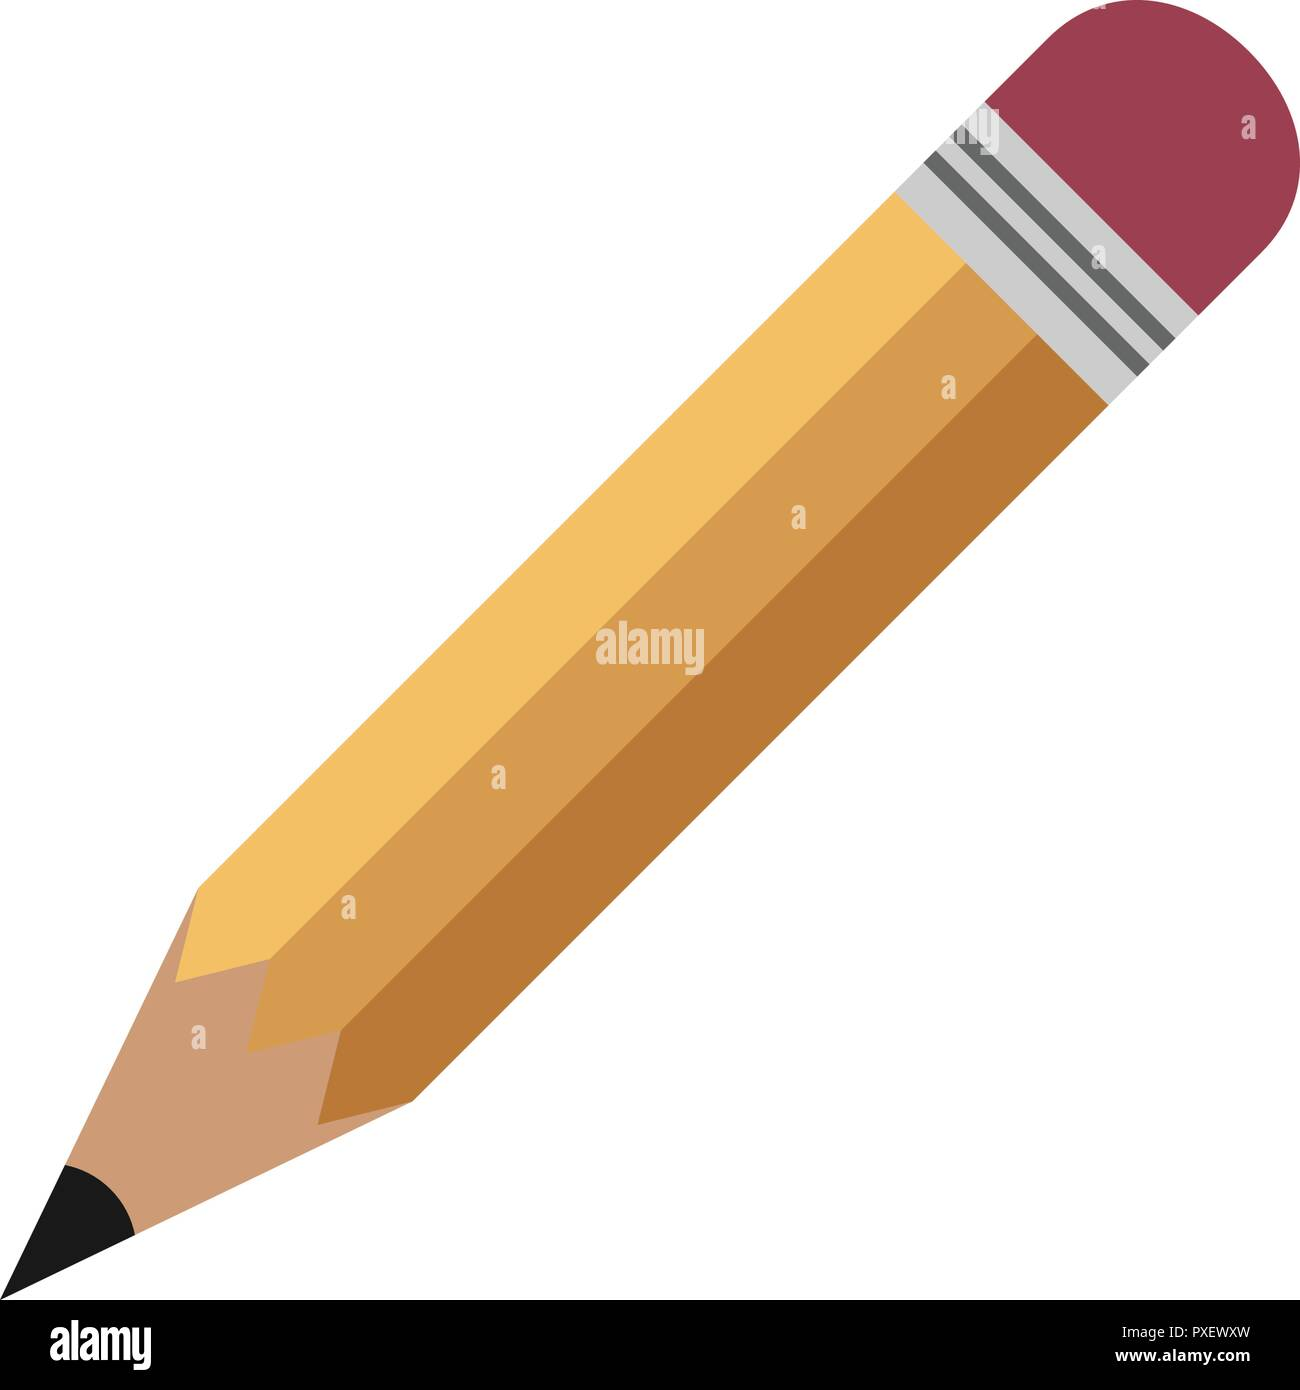 It is an image of Insane Pencil Template Printable